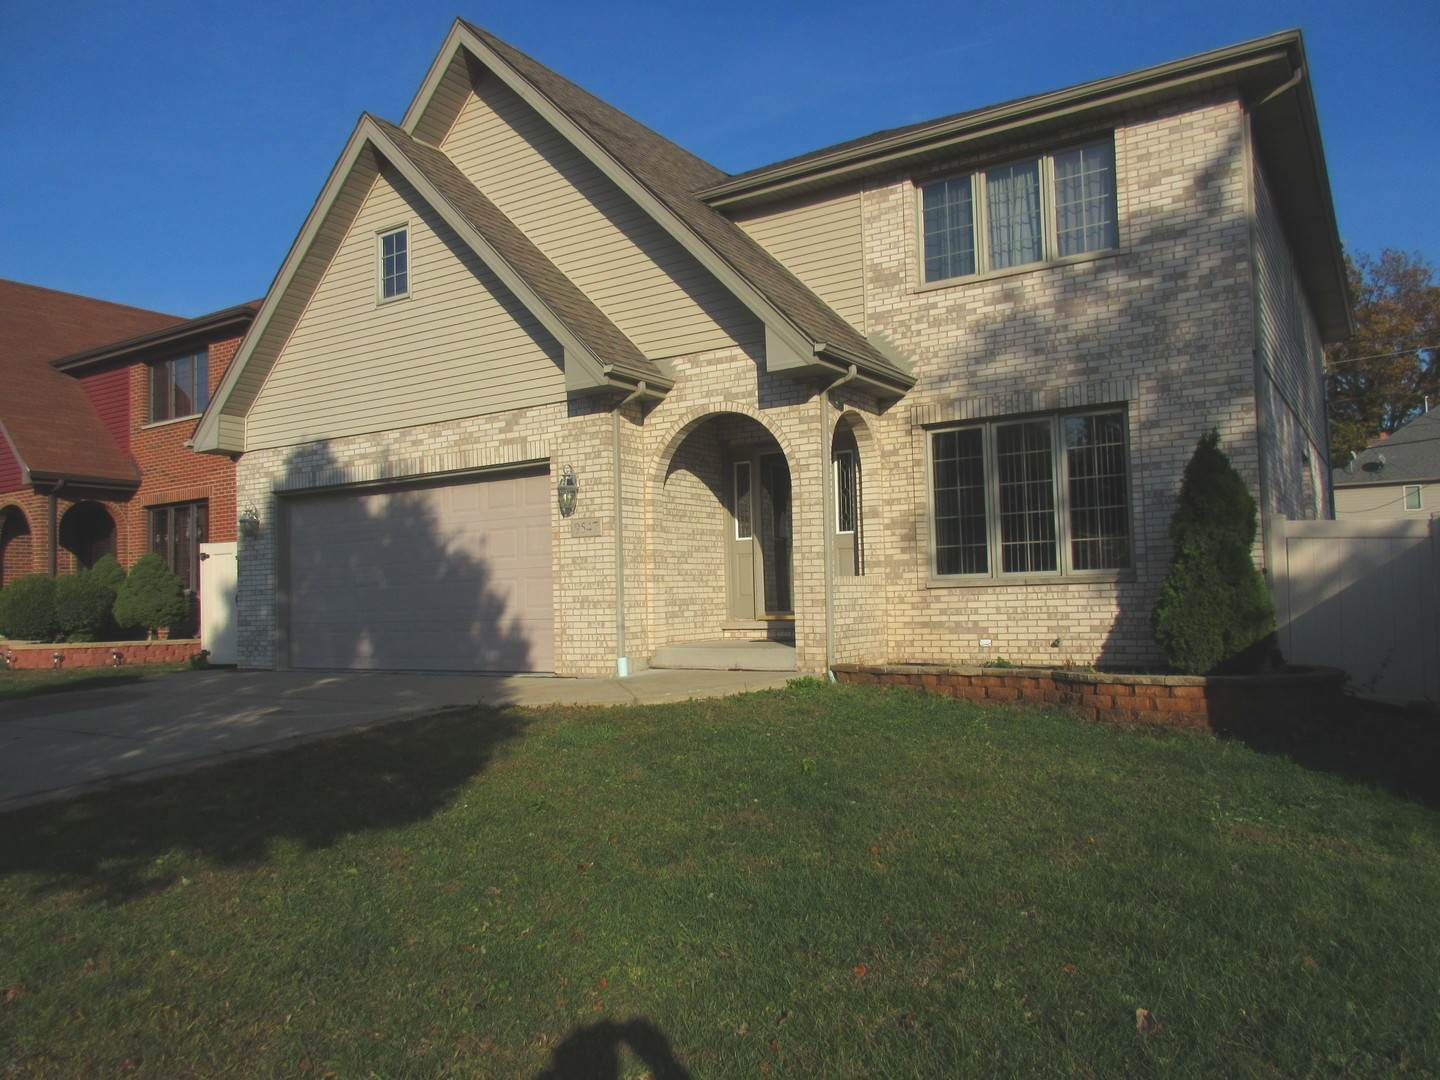 Single Family Homes for Sale at 9547 Merrimac Avenue Oak Lawn, Illinois 60453 United States